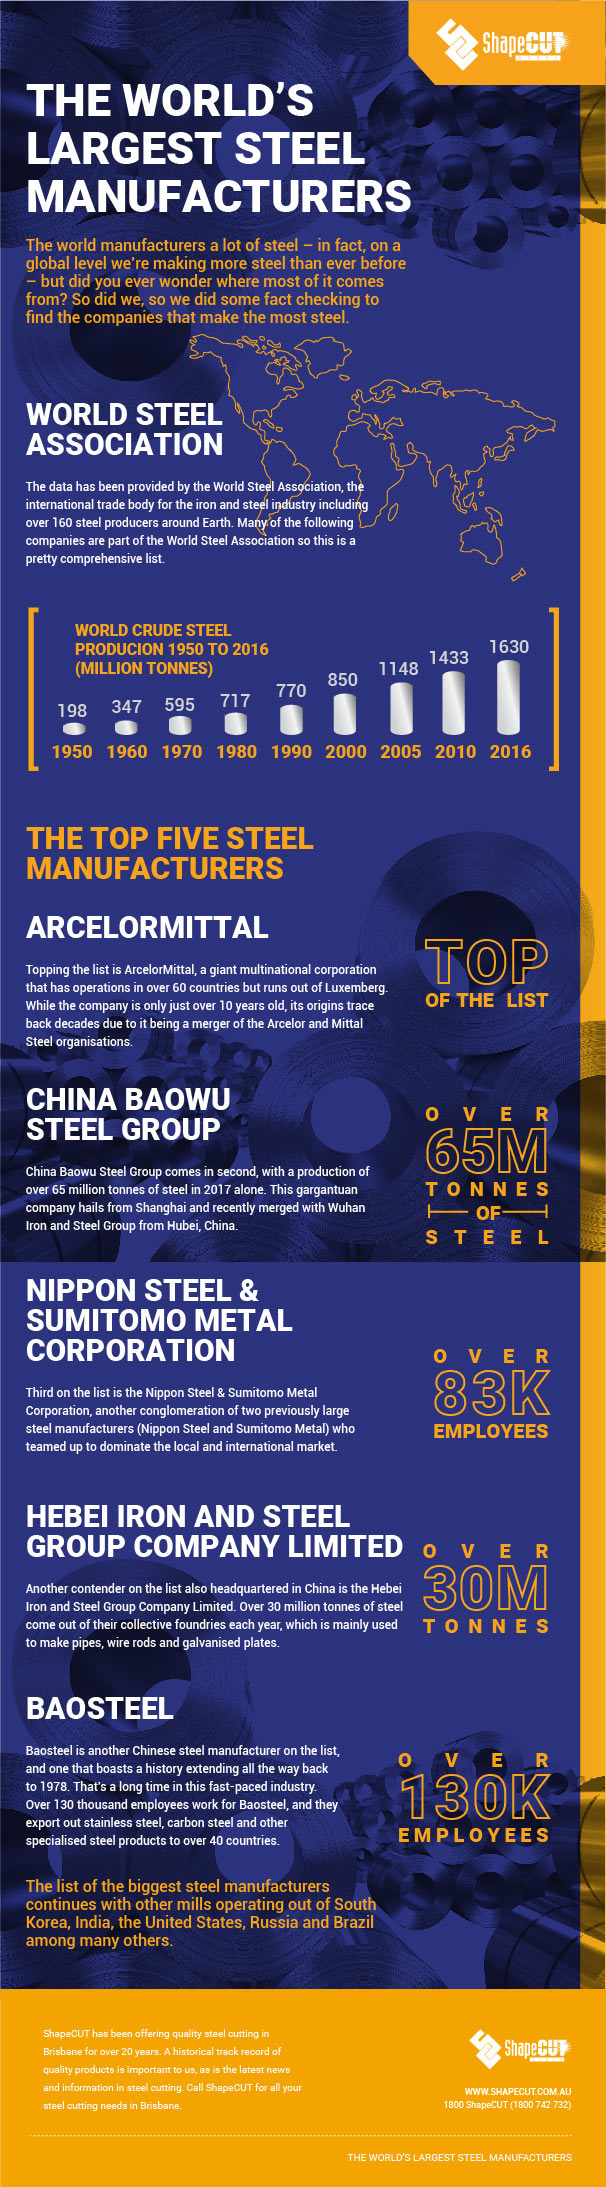 Steel manufacturers infographic